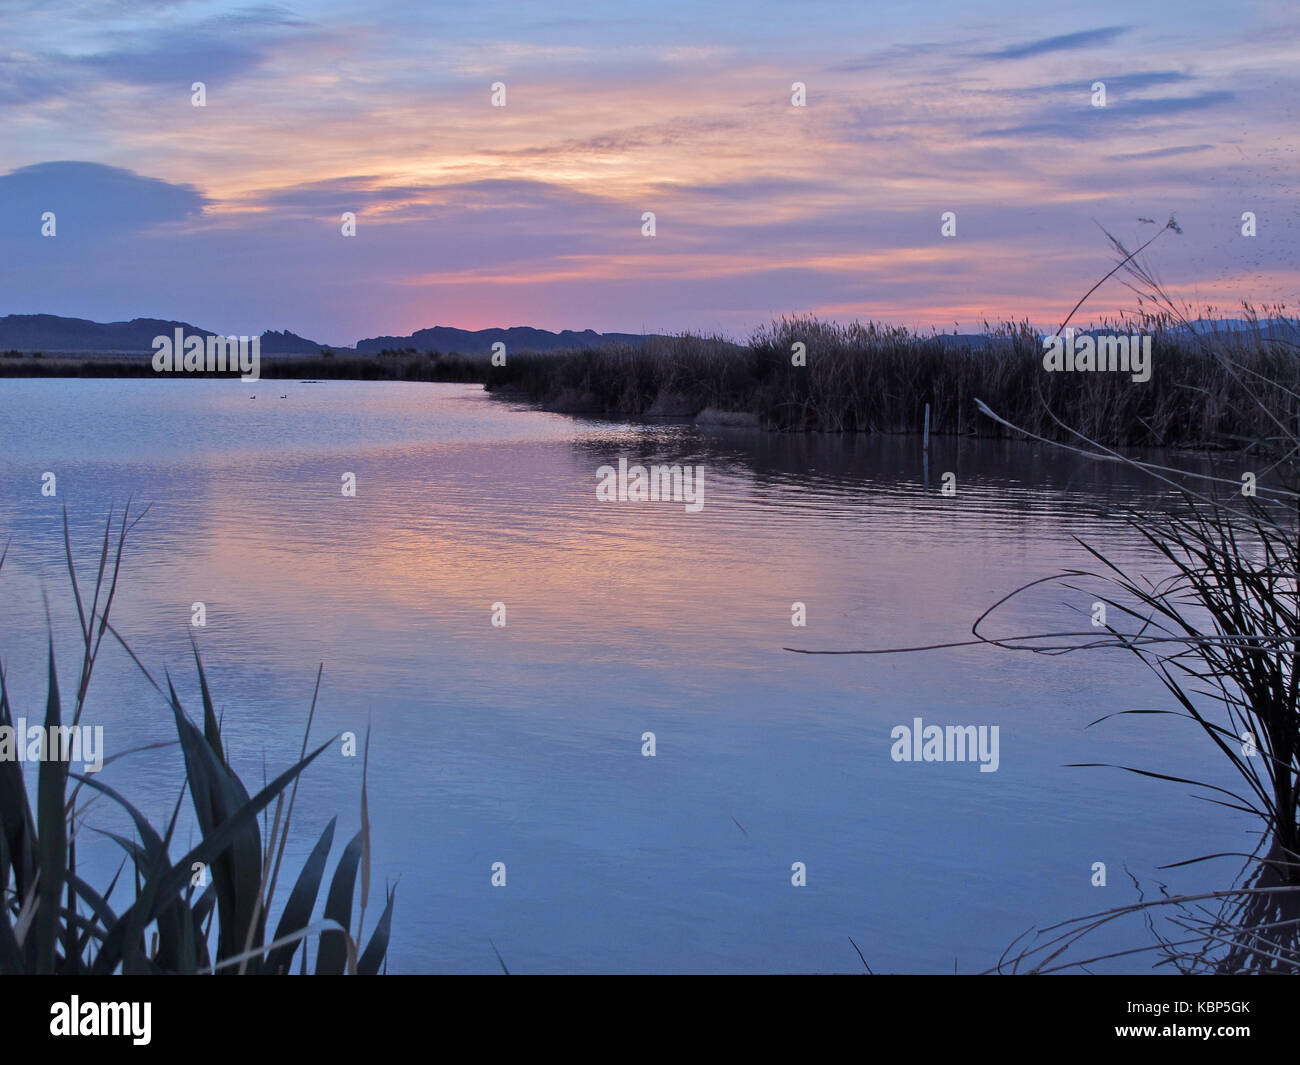 Clark County Wetlands Park, Las Vegas, Nevada - Stock Image